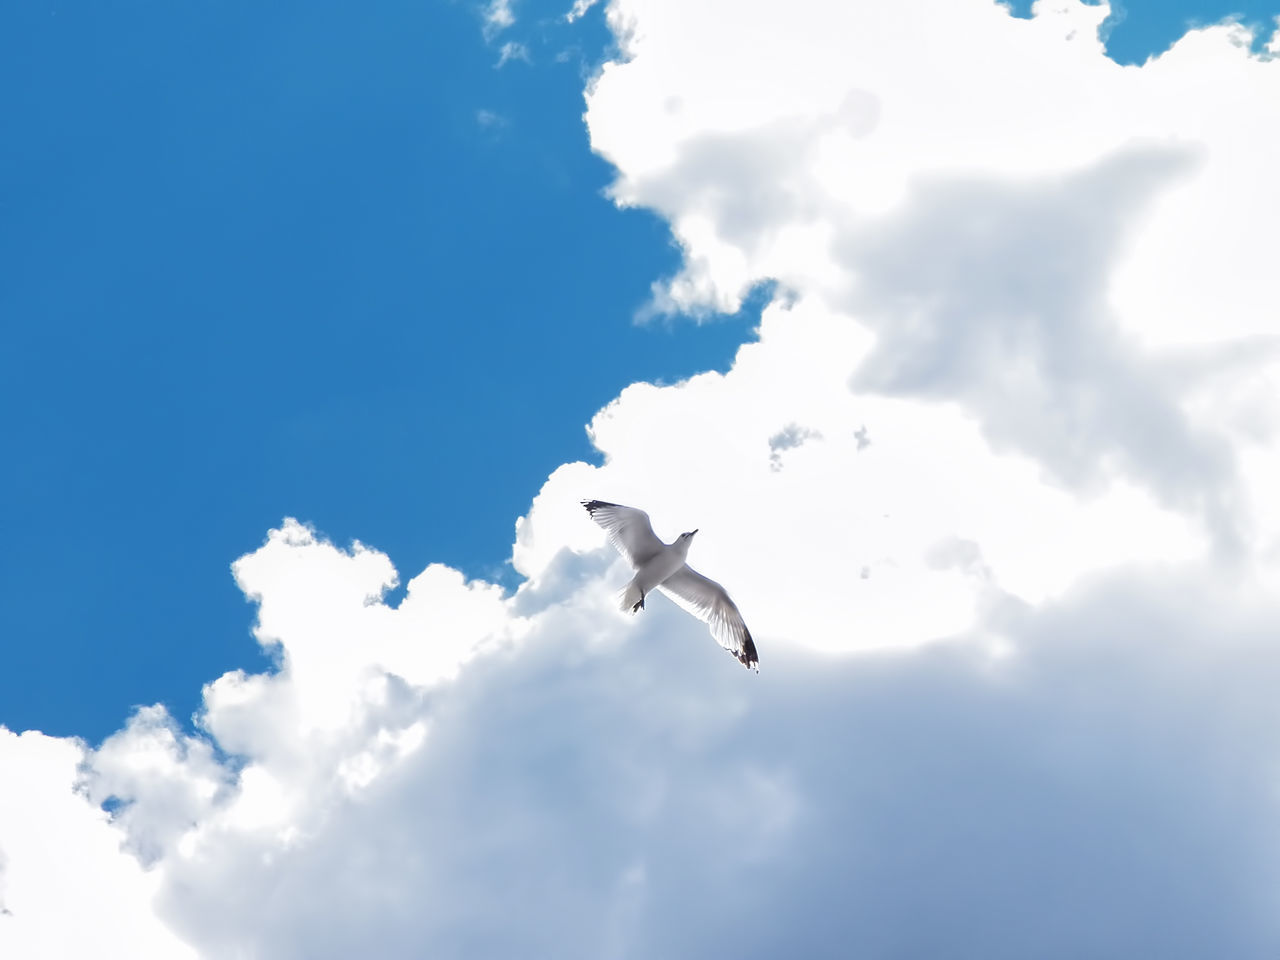 flying, animal themes, one animal, spread wings, bird, animals in the wild, sky, cloud - sky, mid-air, low angle view, animal wildlife, nature, day, seagull, outdoors, no people, beauty in nature